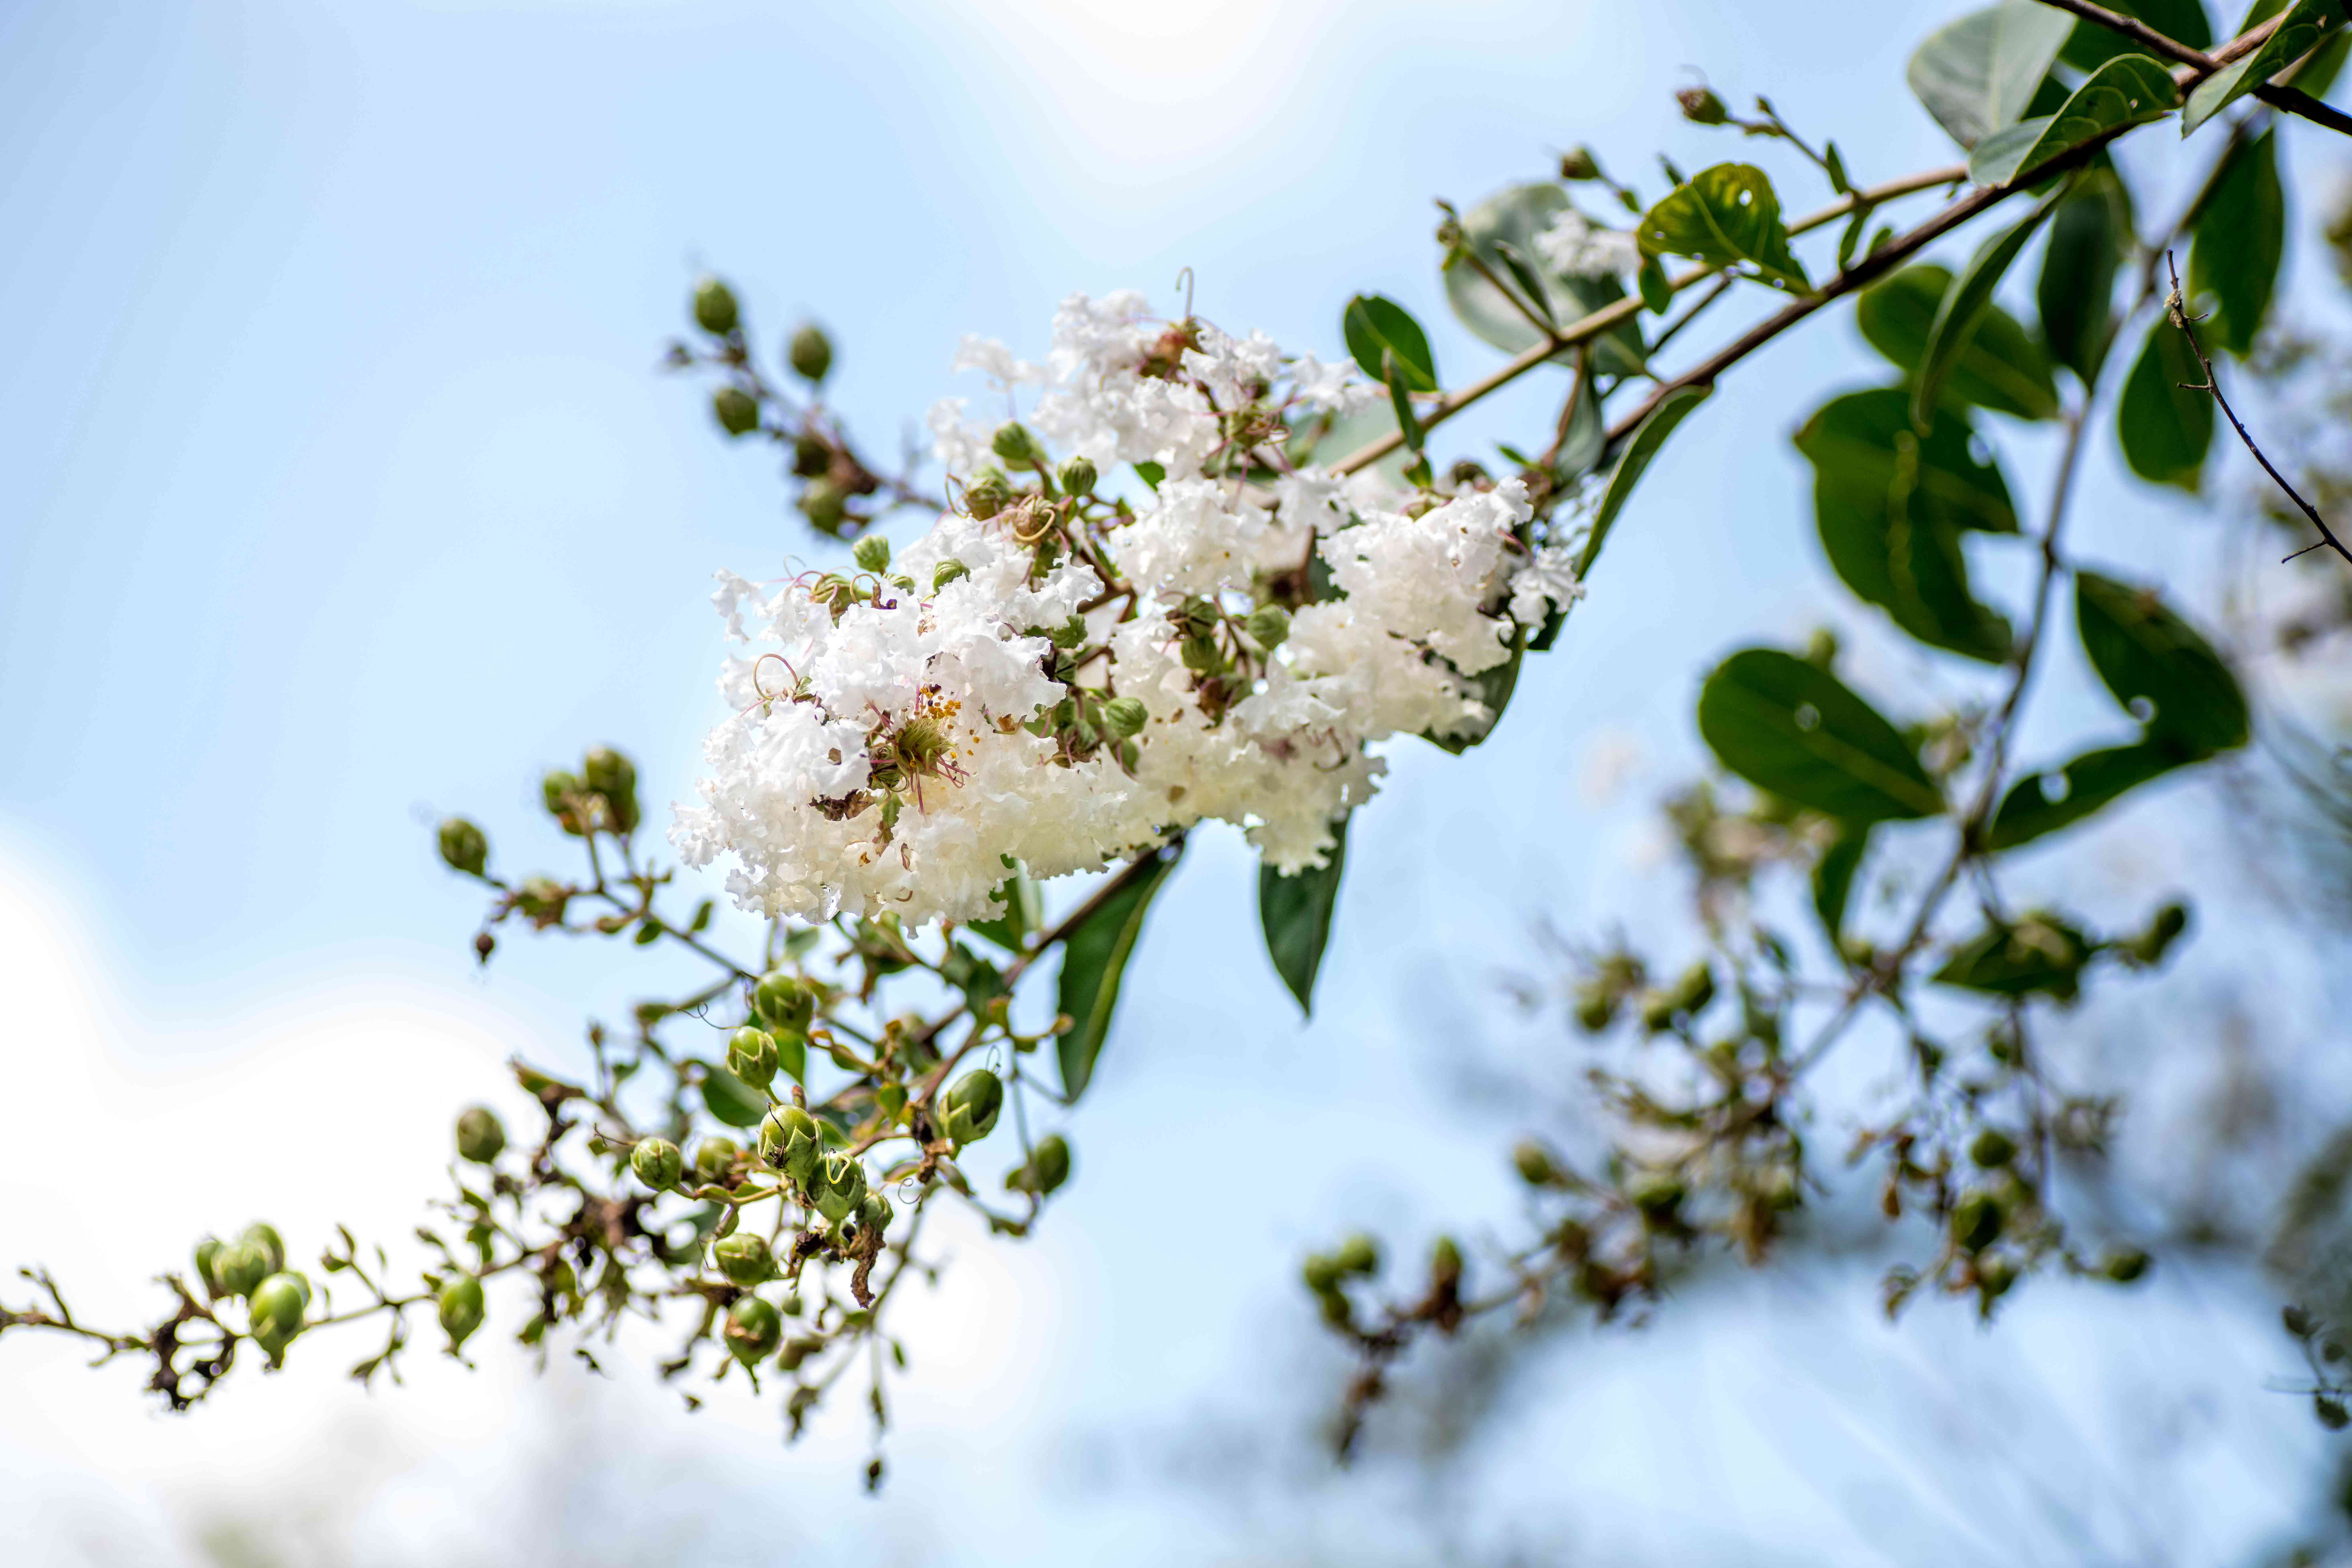 Acoma crape myrtle with white blossoms and buds on end of tree branch